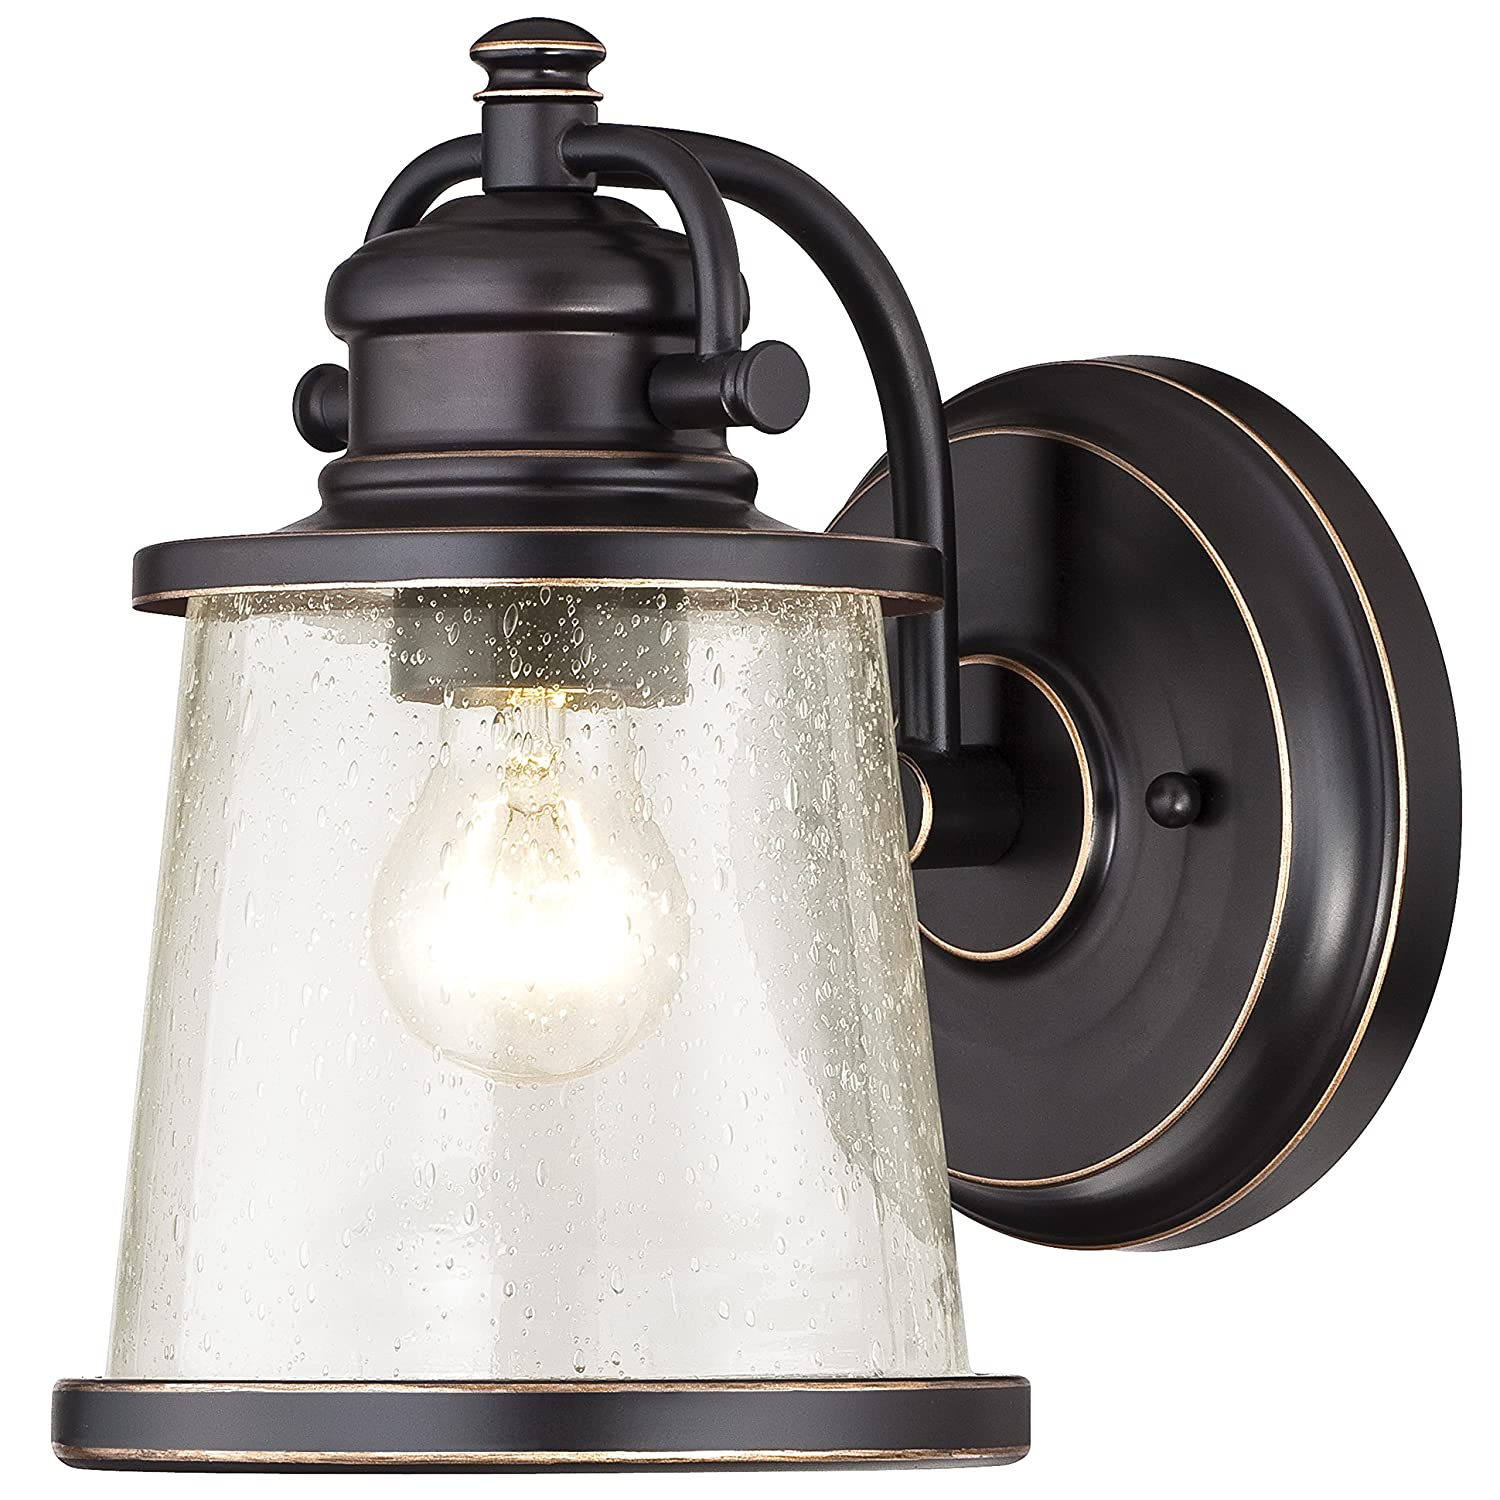 exterior wall lantern with built in electrical outlet. westinghouse 6204000 emma jane 1 light outdoor wall lantern, amber bronze - amazon.com exterior lantern with built in electrical outlet